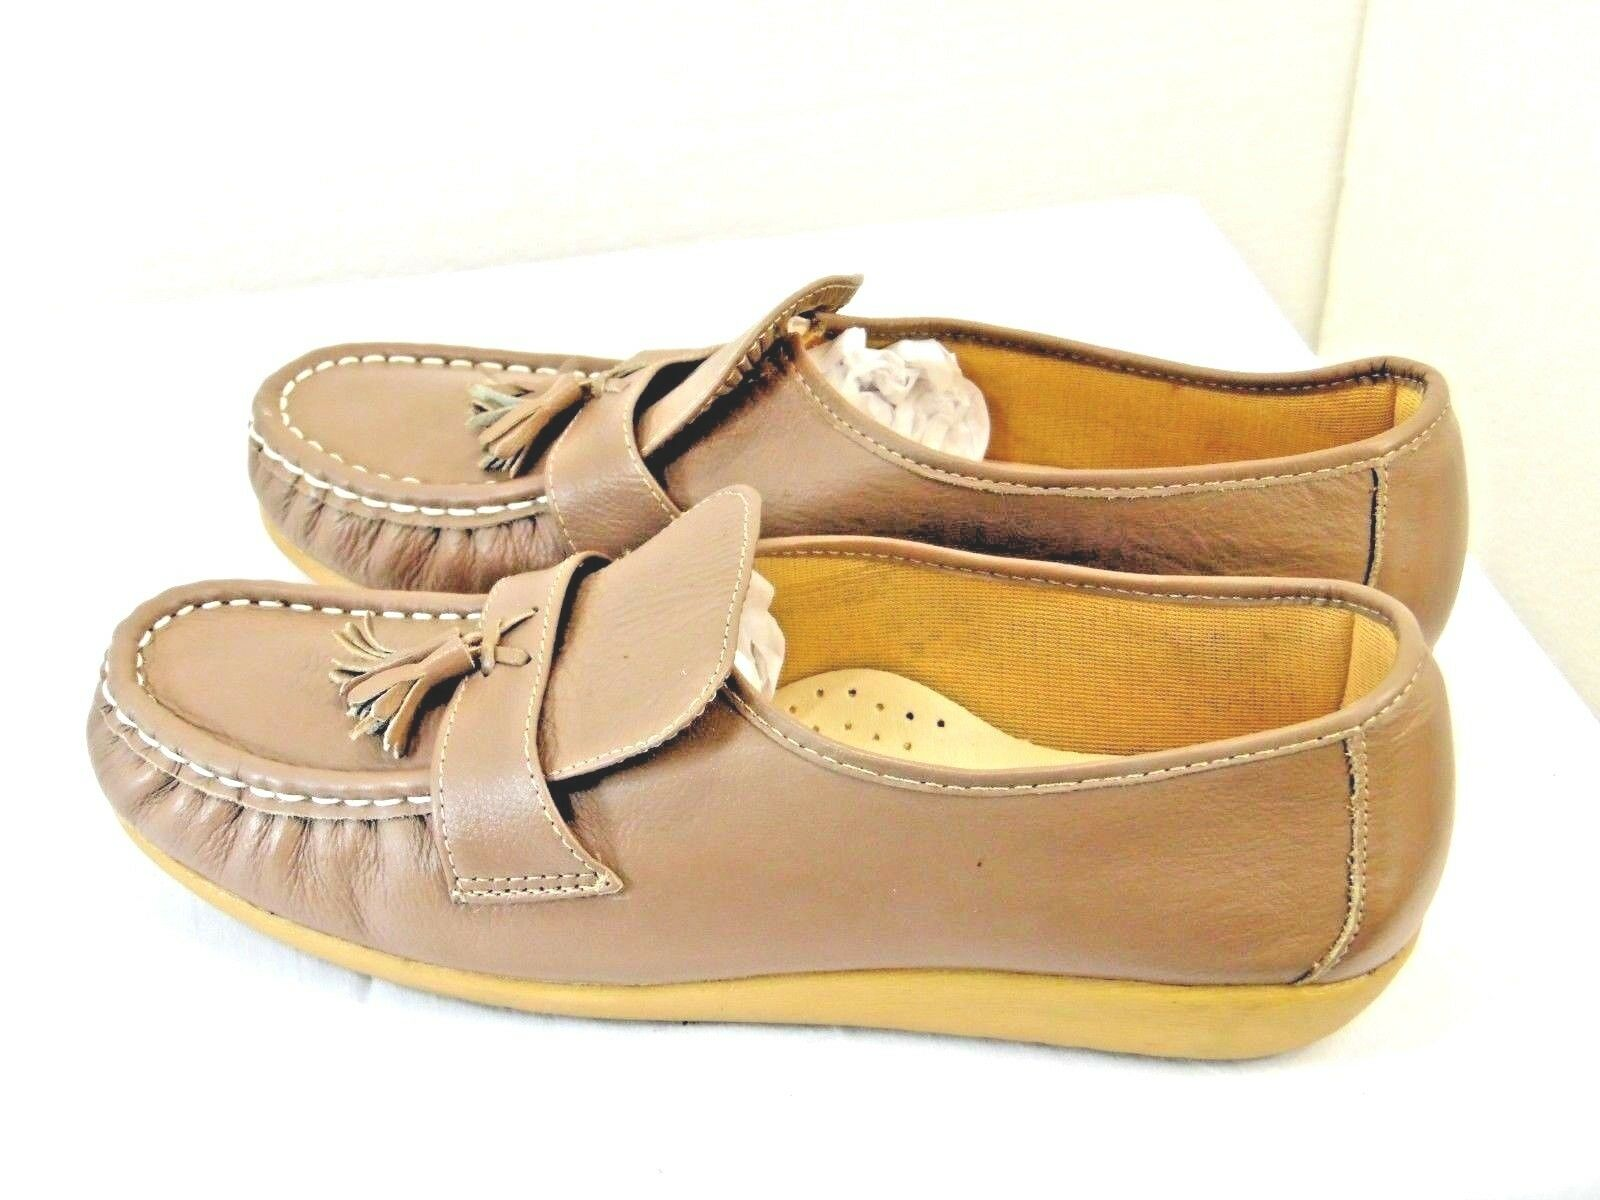 CASUAL WALKERS brand womens shoes leather upper size 81 2  m dark tan color  YC3